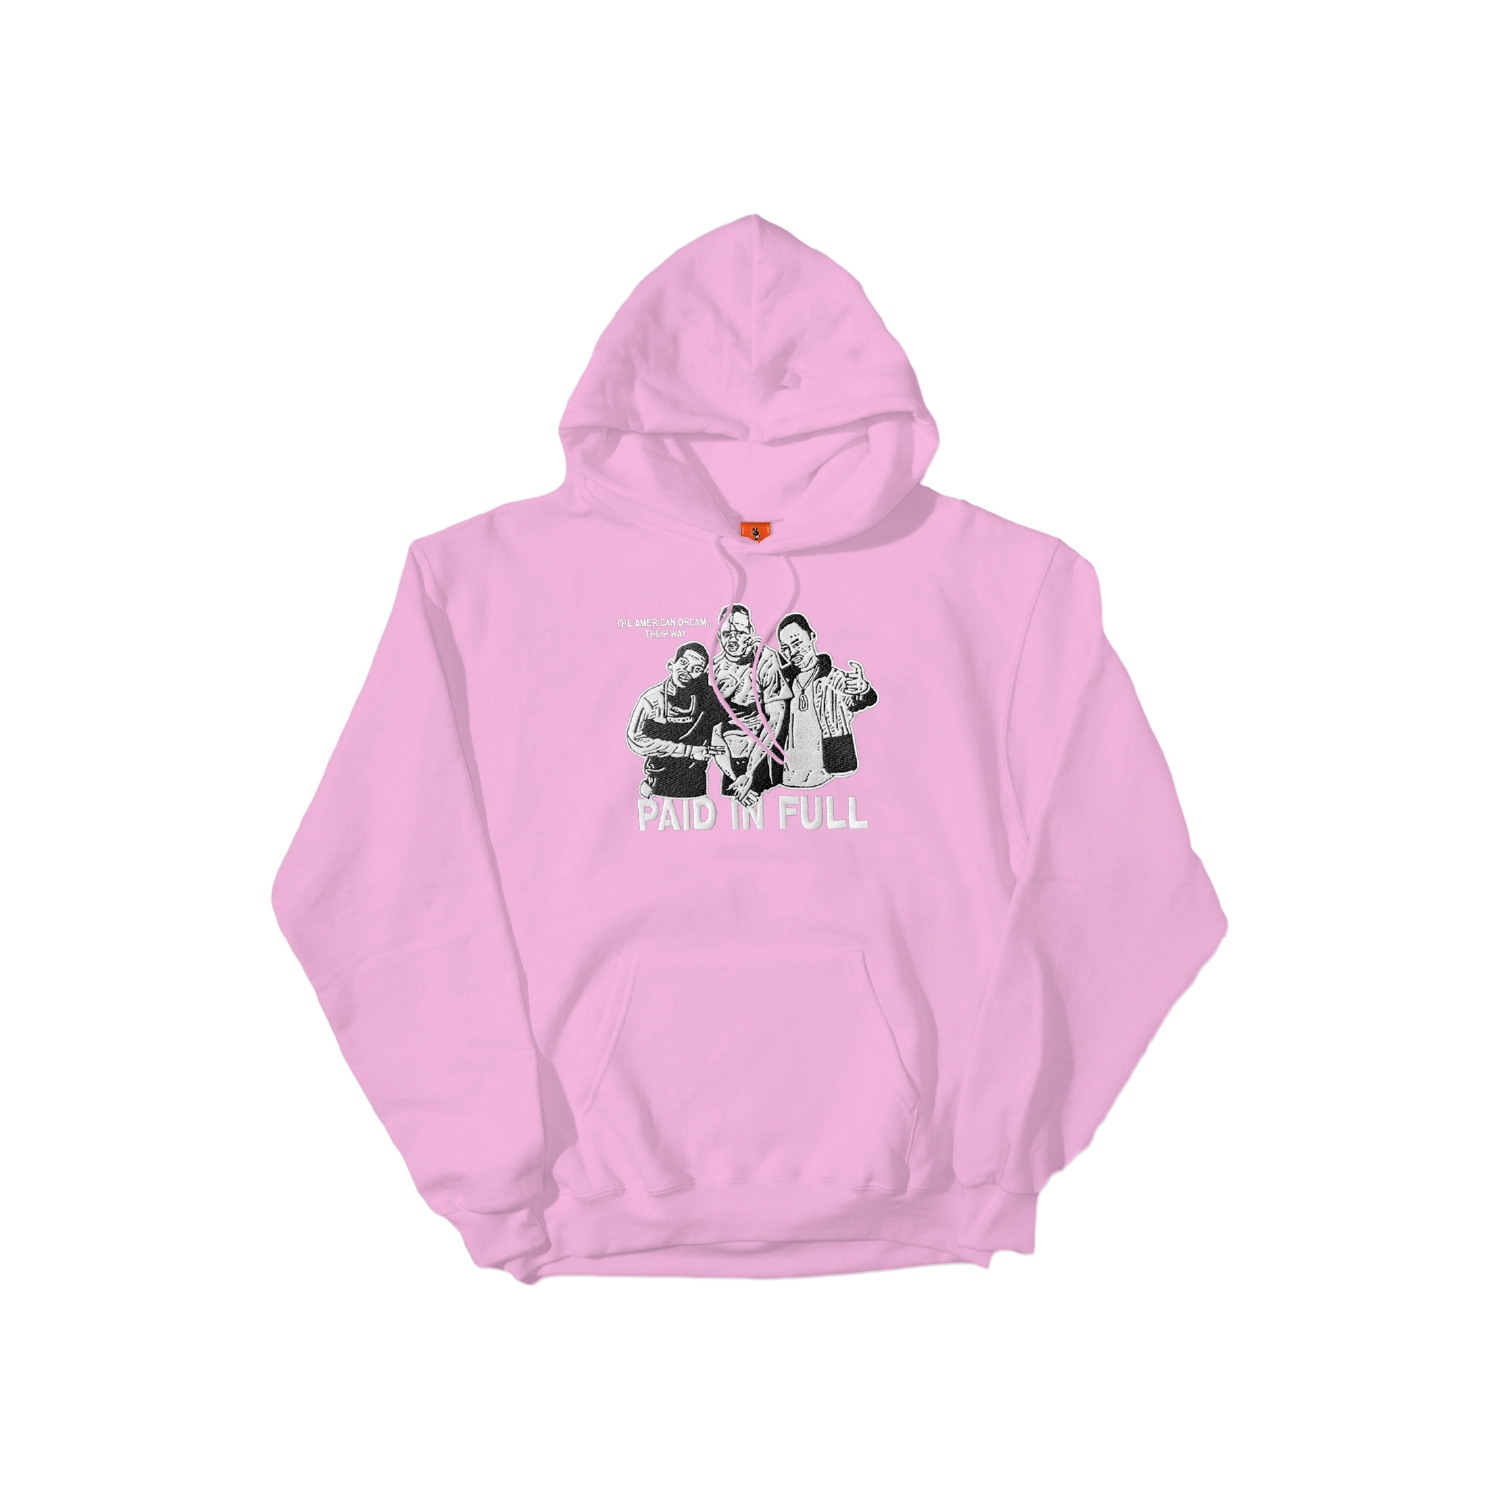 【COLD WORLD FROZEN GOODS/コールドワールドフローズングッズ】PAID IN FULL HOODIE パーカー / CAM'RON PINK